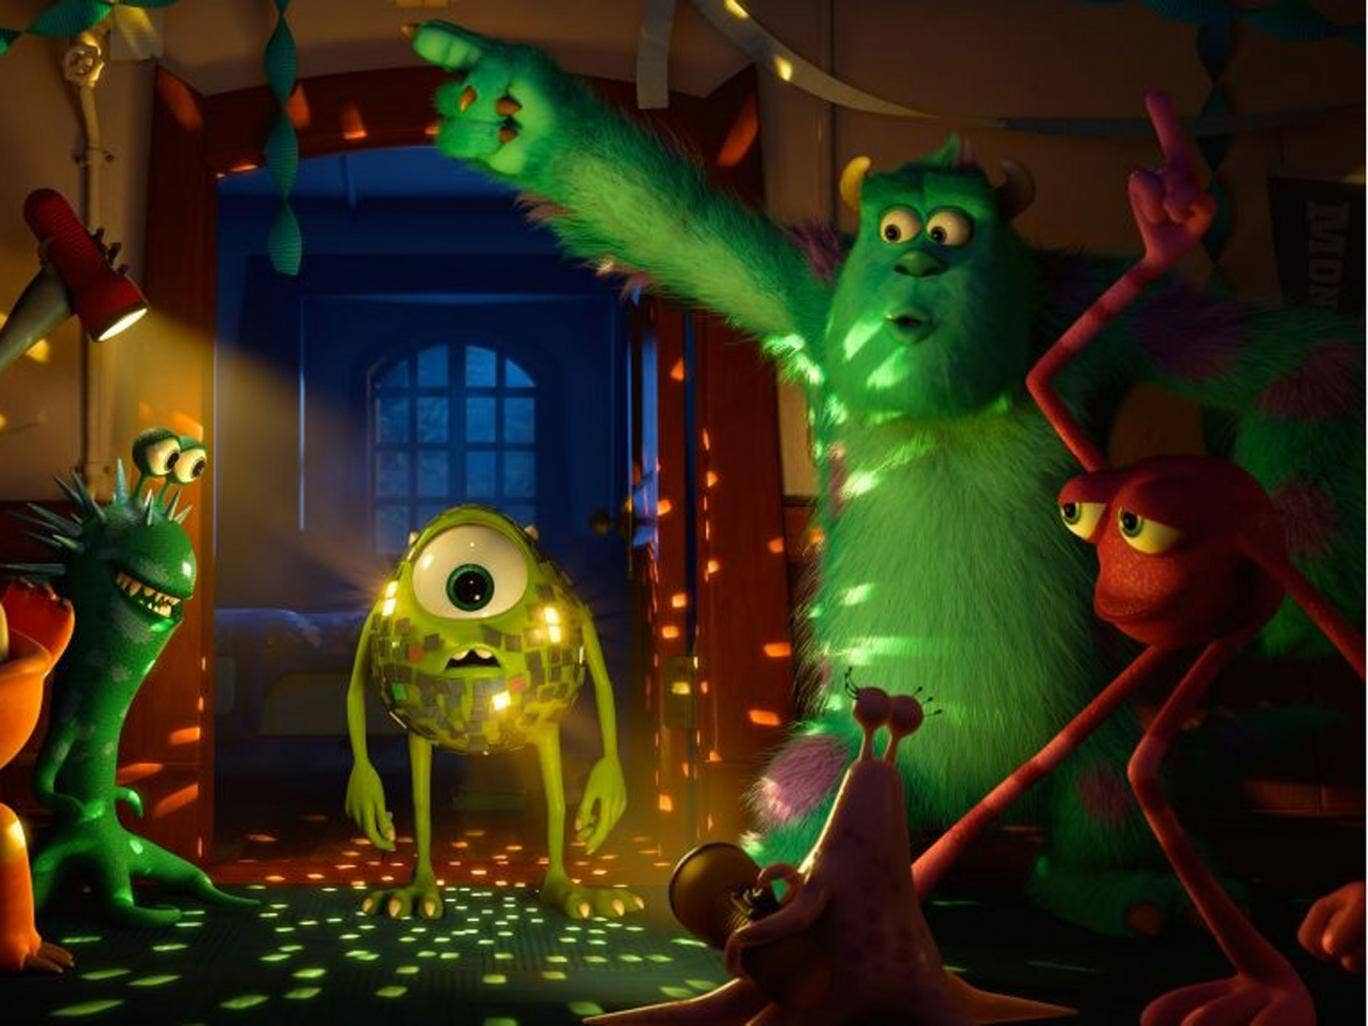 Let's dance: 'Monsters University'